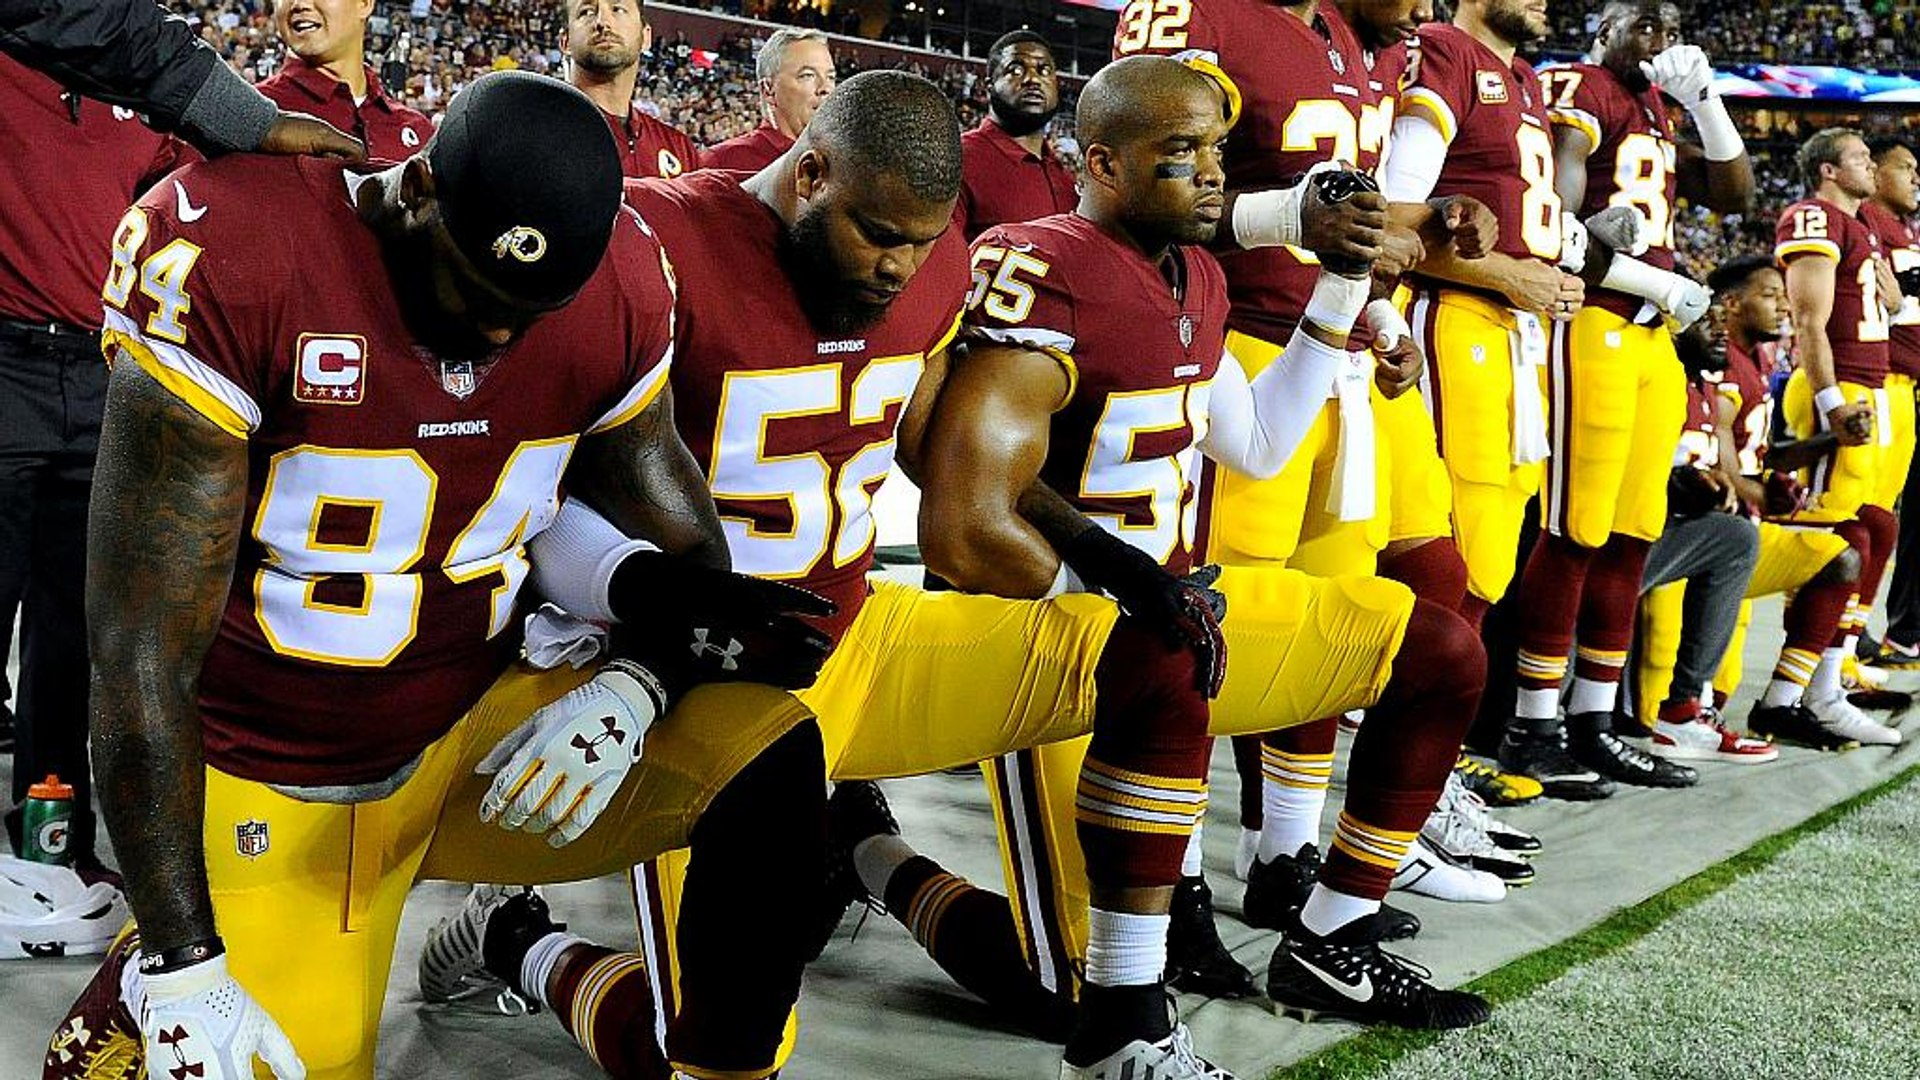 NFL teams to be fined if protesting players kneel during anthem